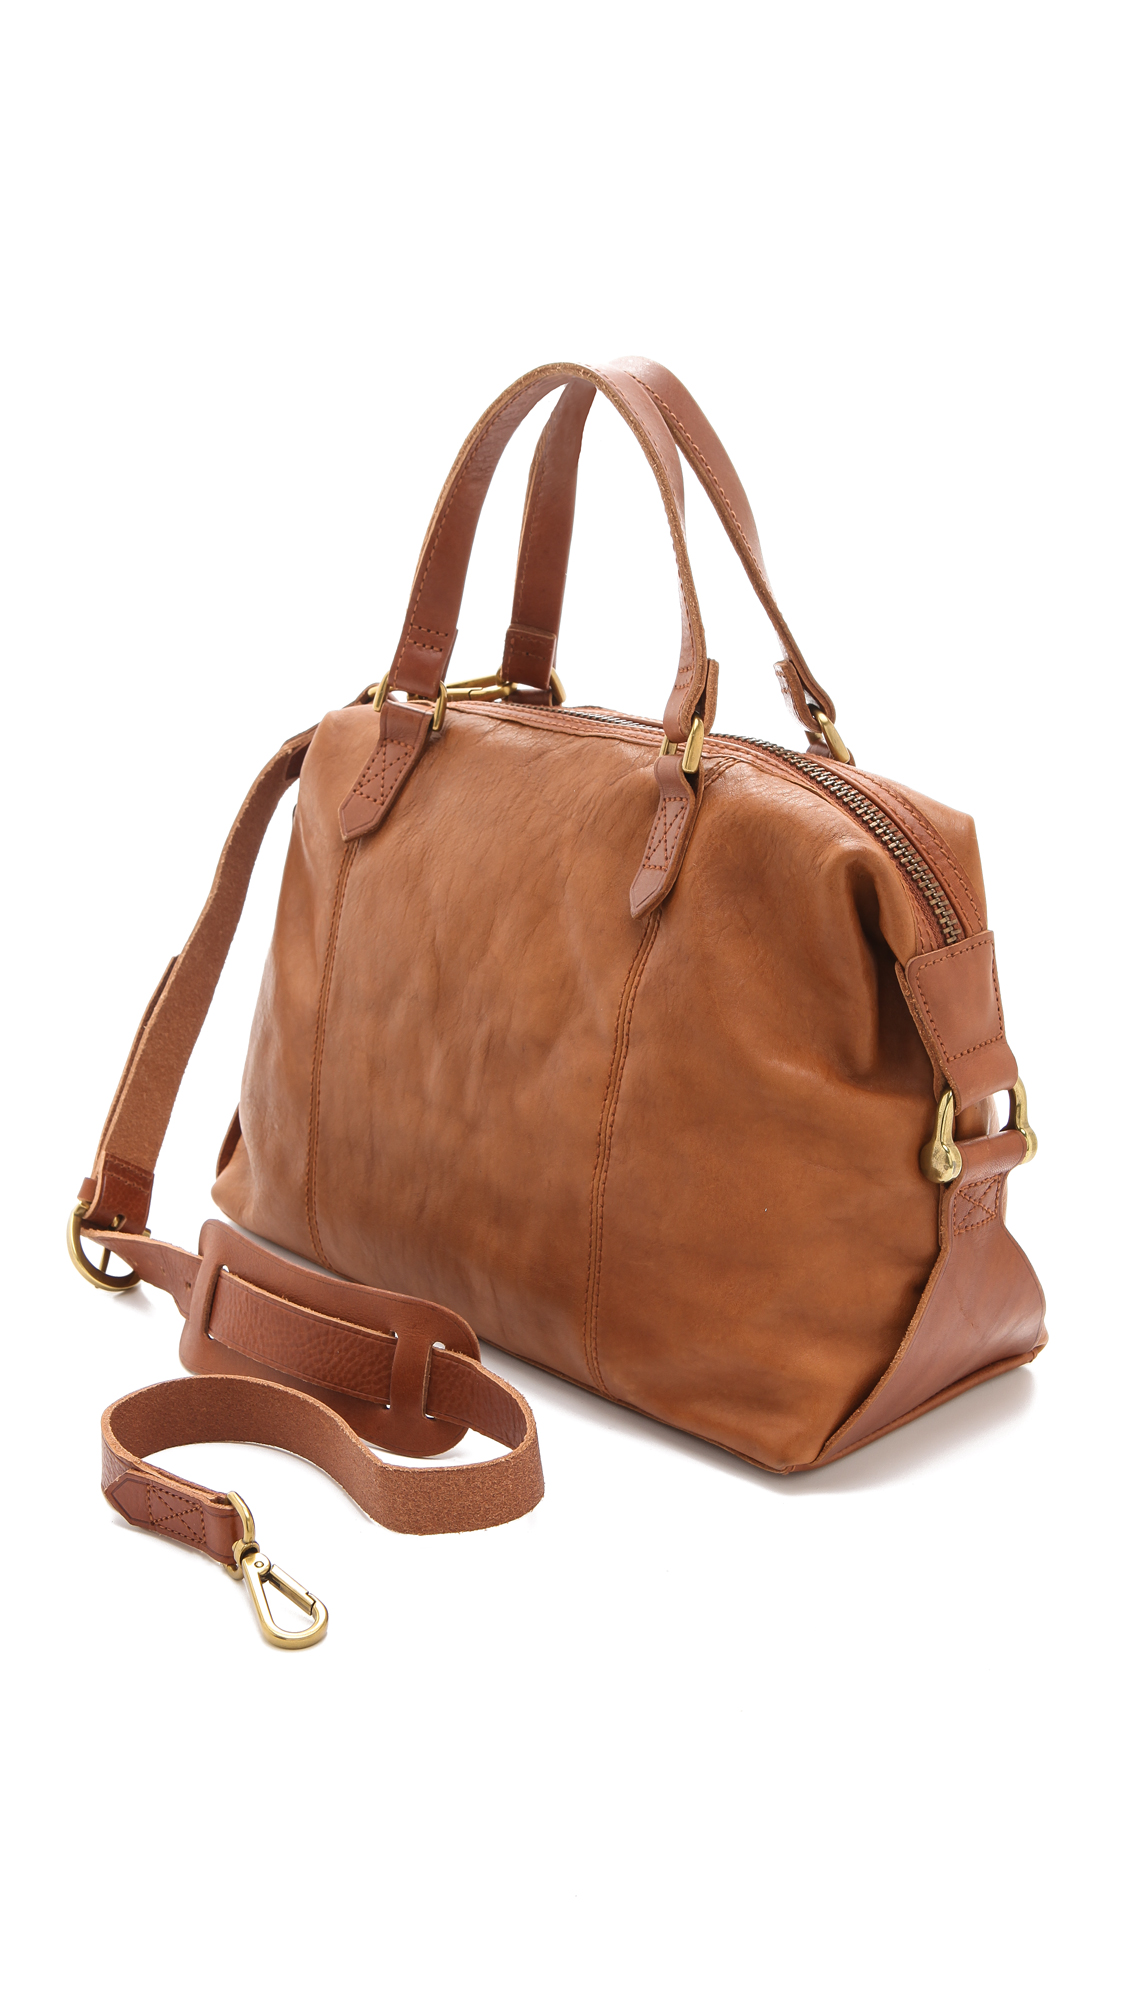 062cbc02cc0f Lyst - Madewell Leather Caravan Satchel in Brown